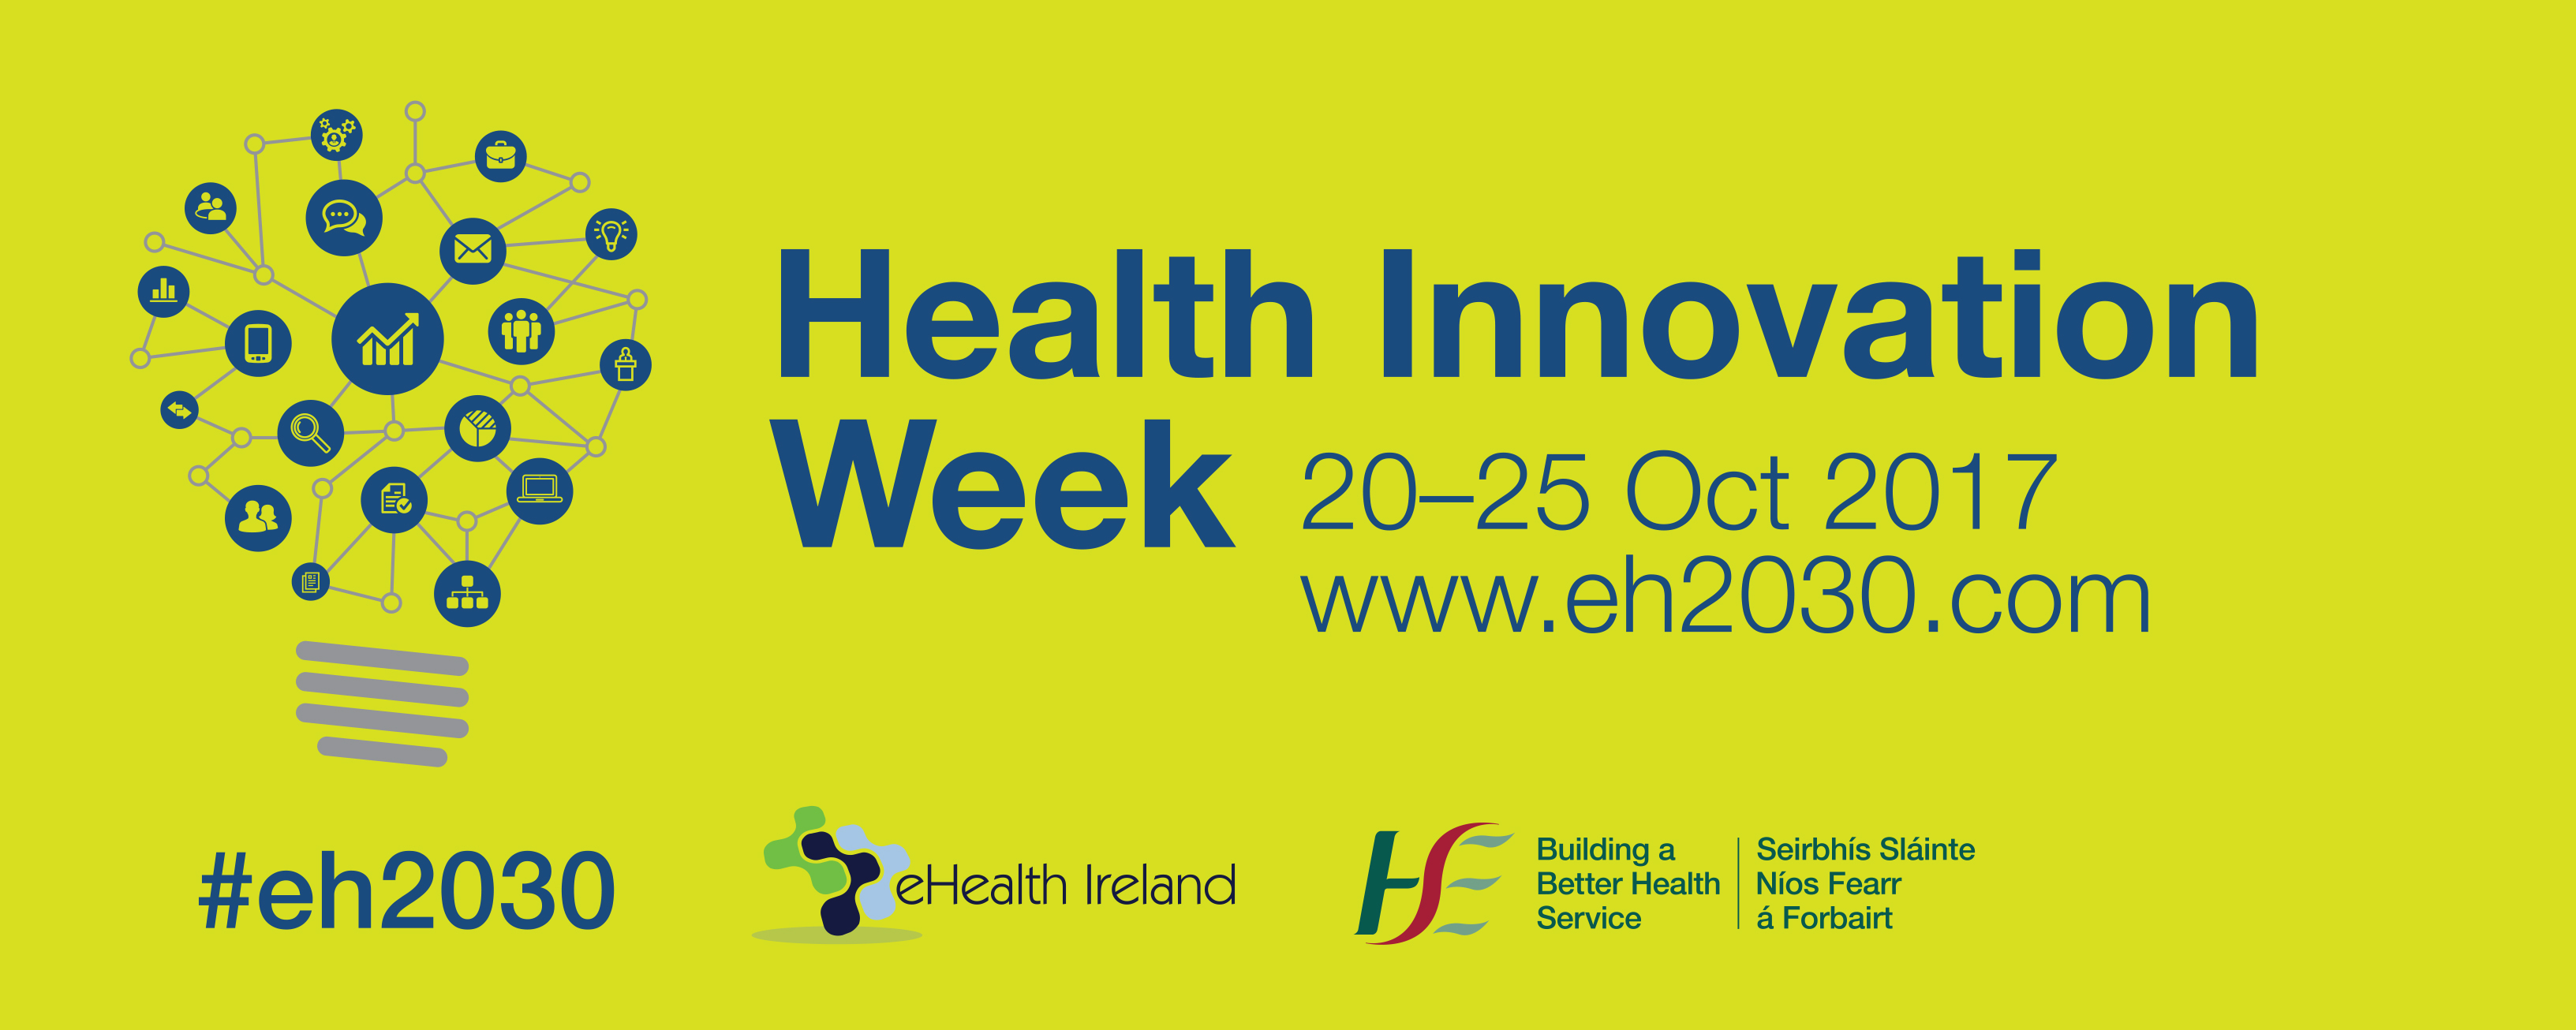 Health innovation week